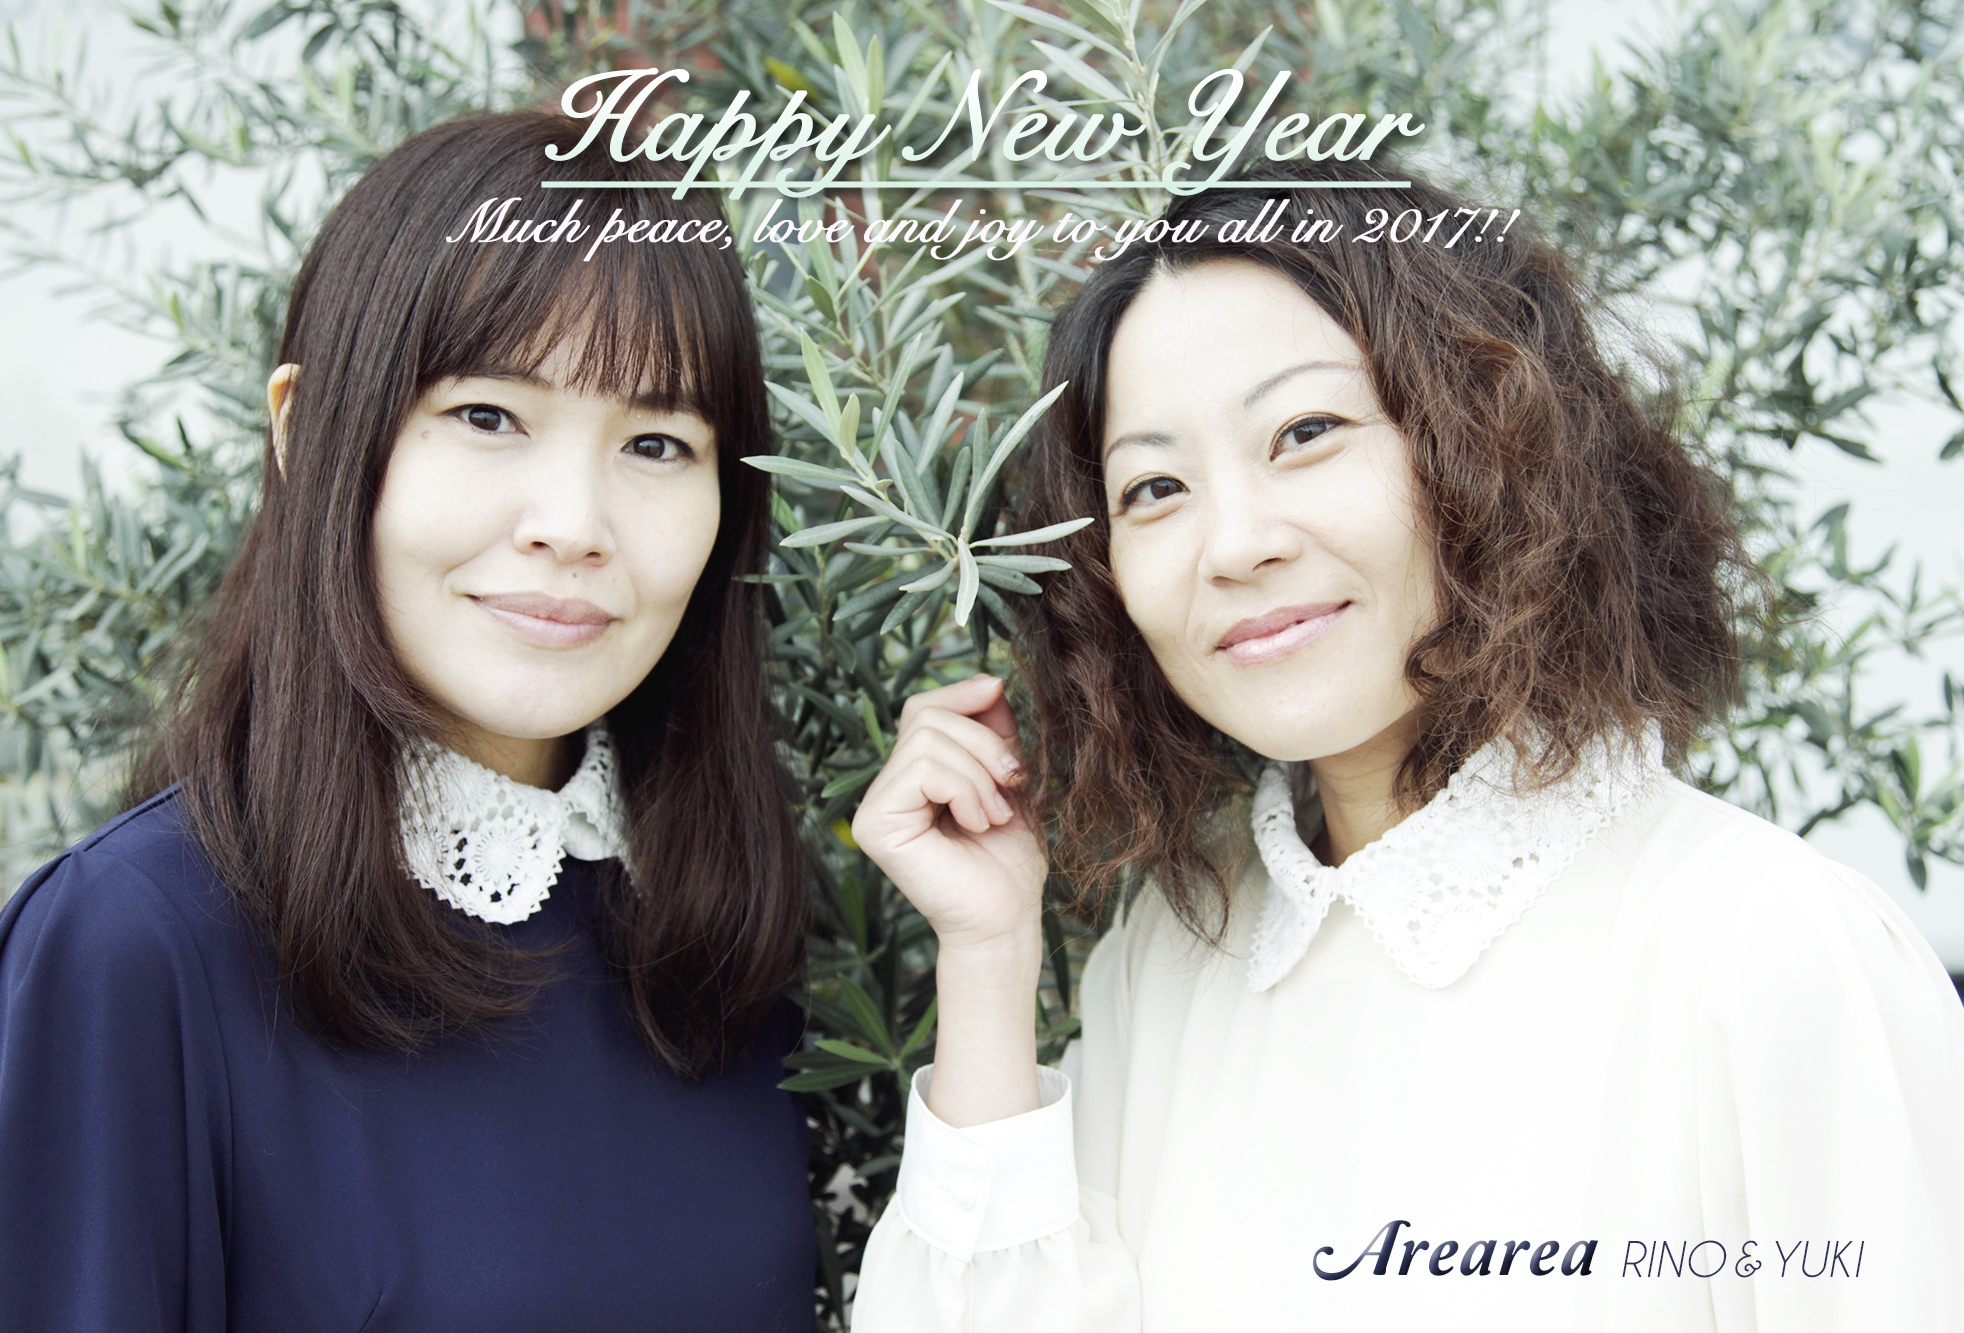 Happy New Year! from Arearea